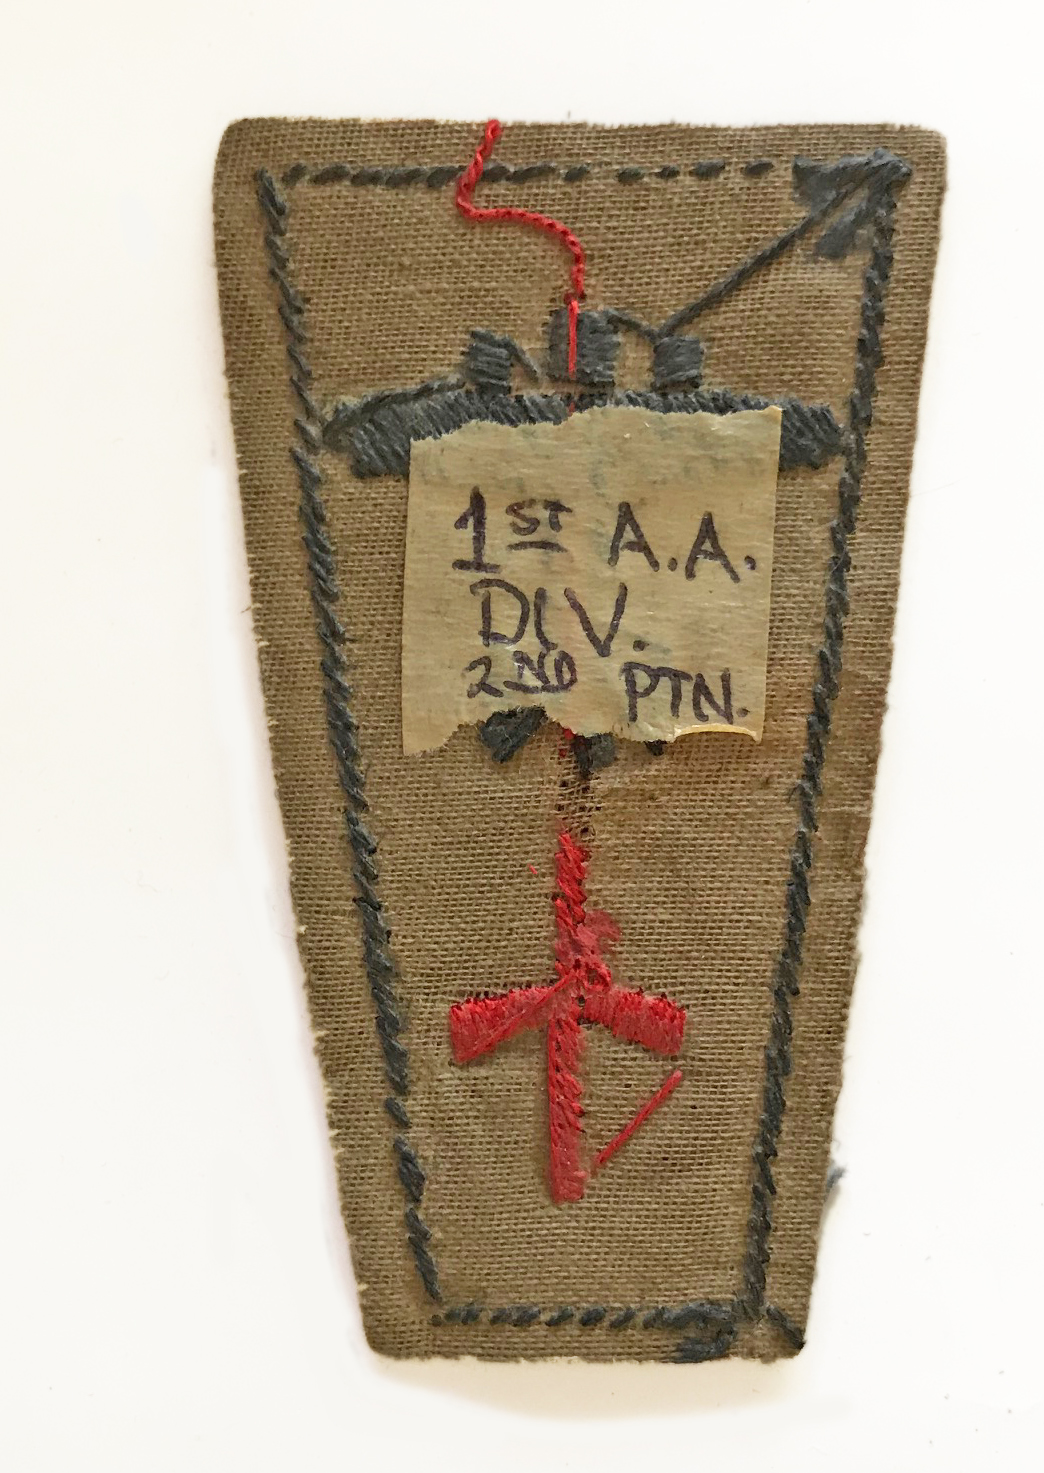 Rare early anti-aircraft patch